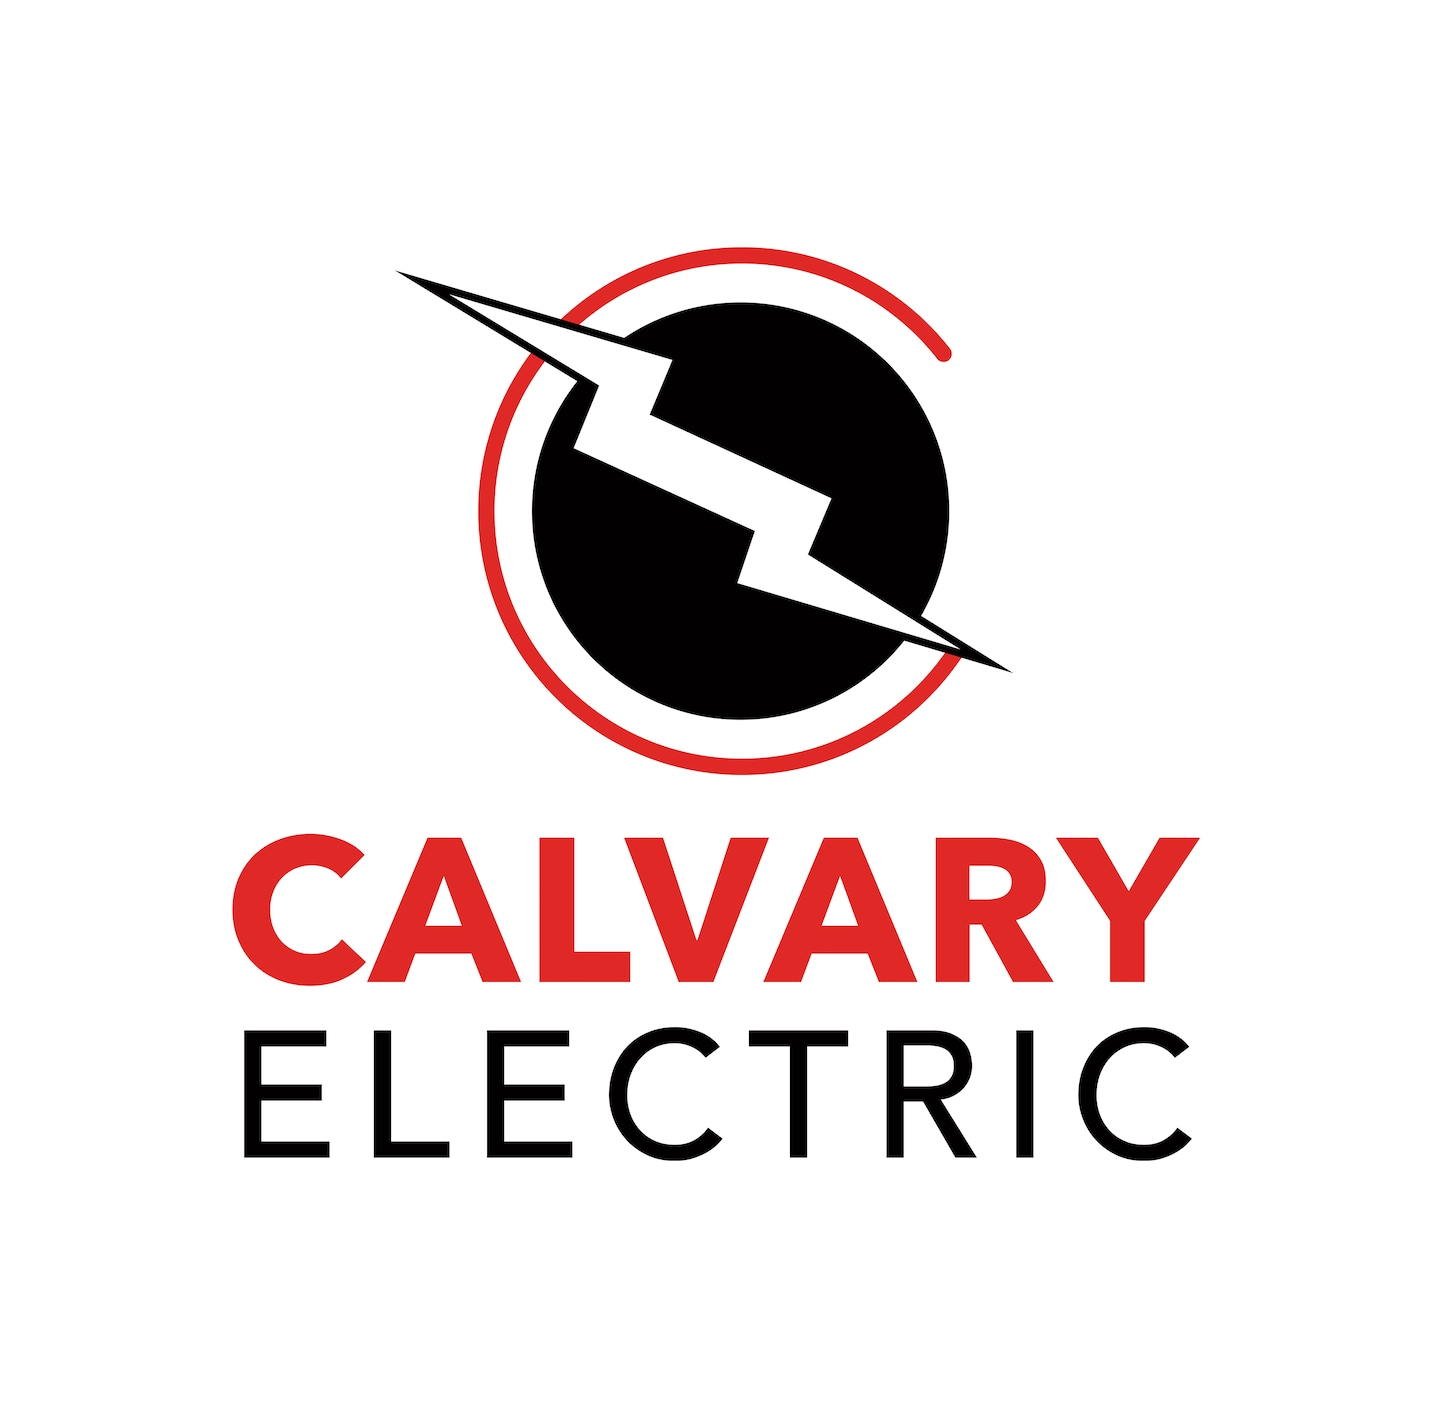 Calvary Electric LLC